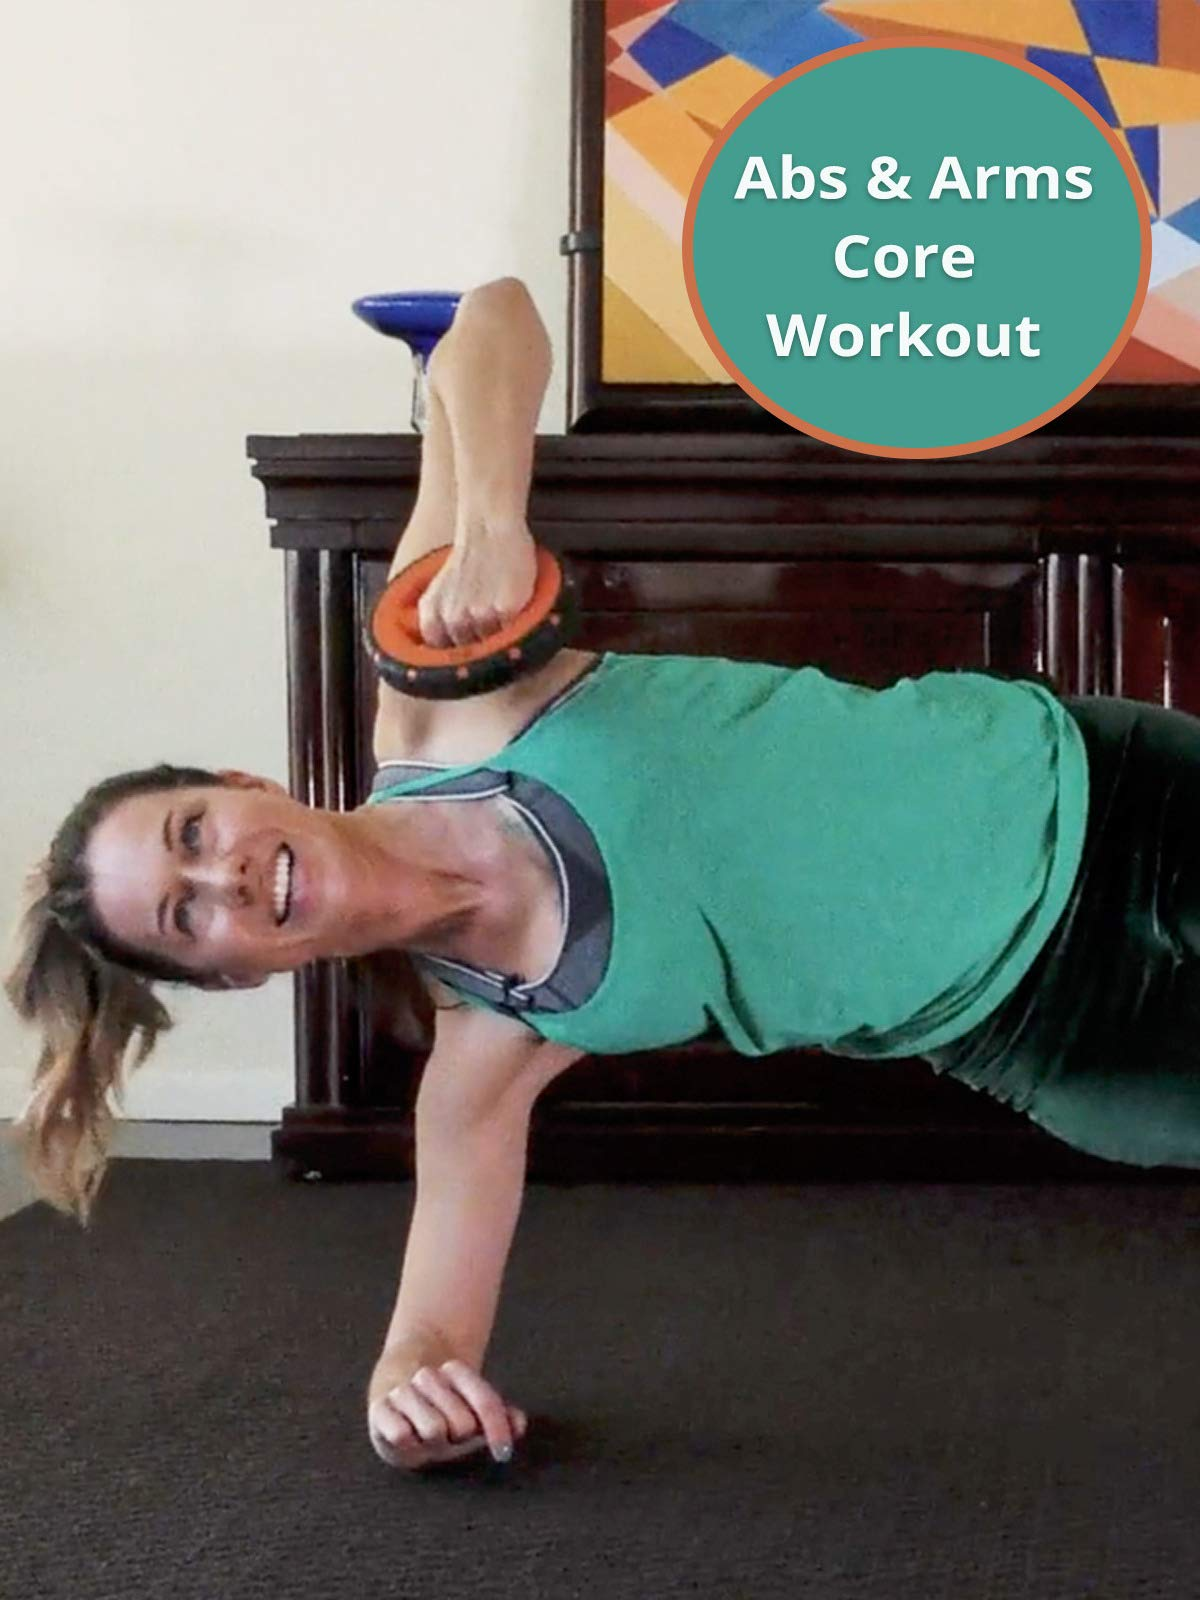 Abs & Arms Core Workout